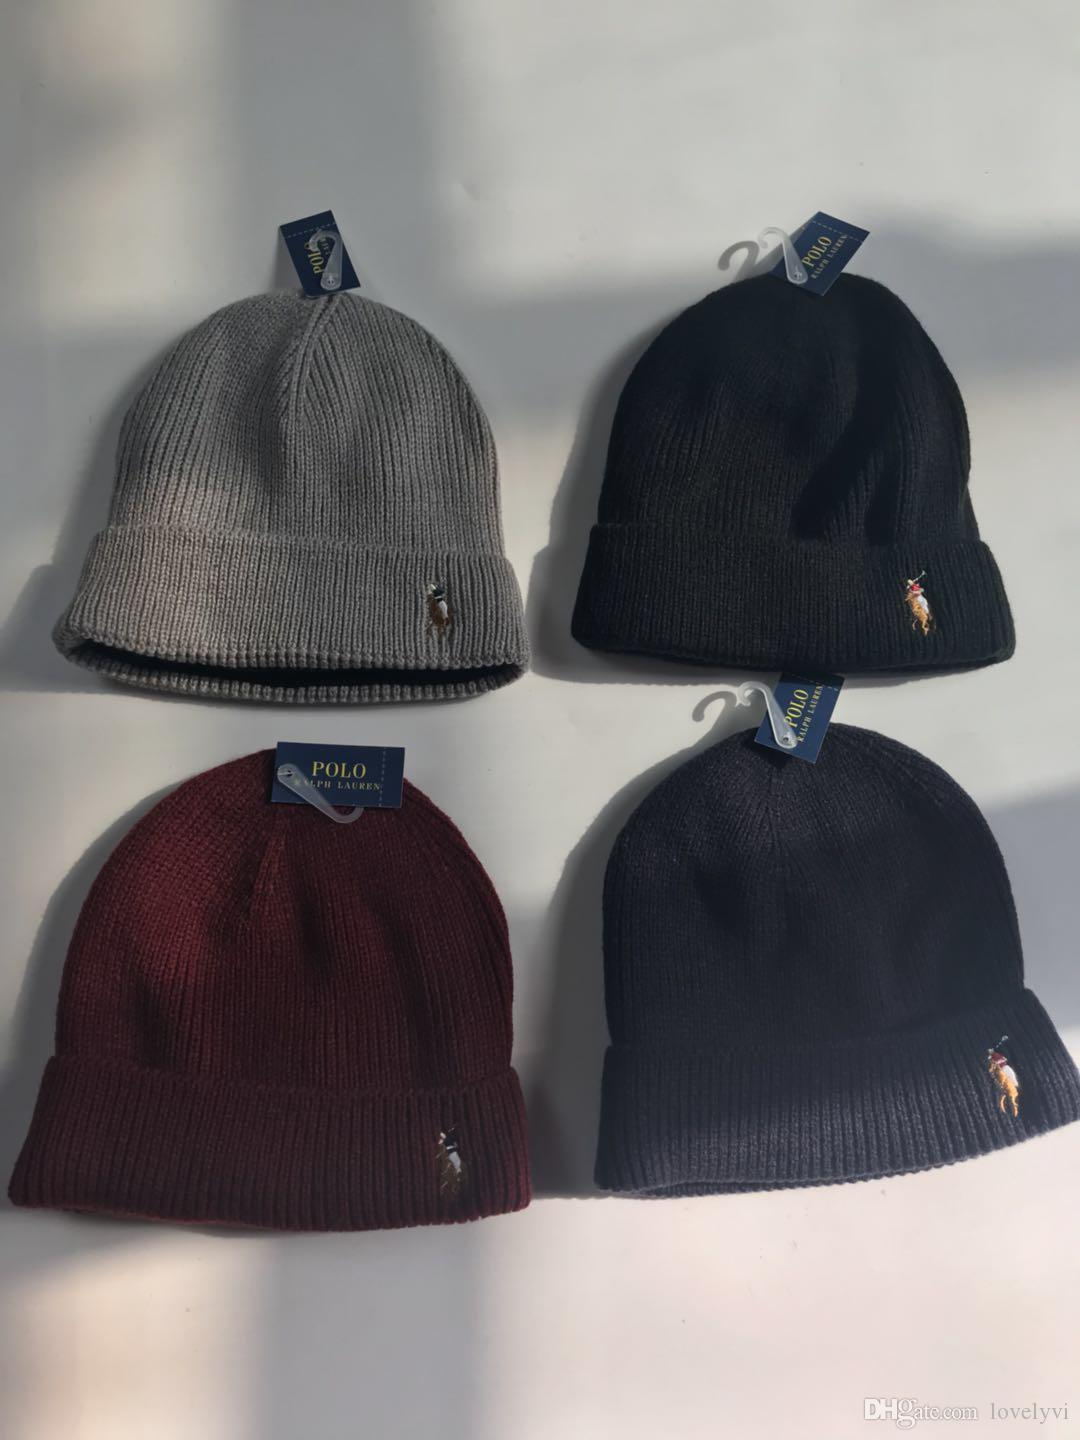 2018 Newest Polo Winter Ski Hat Wool Hat Men And Women Thickening Warm Ear  Protection Cap Knitted Head Hat Caps Dhl Canada 2019 From Lovelyvi ba435058b445